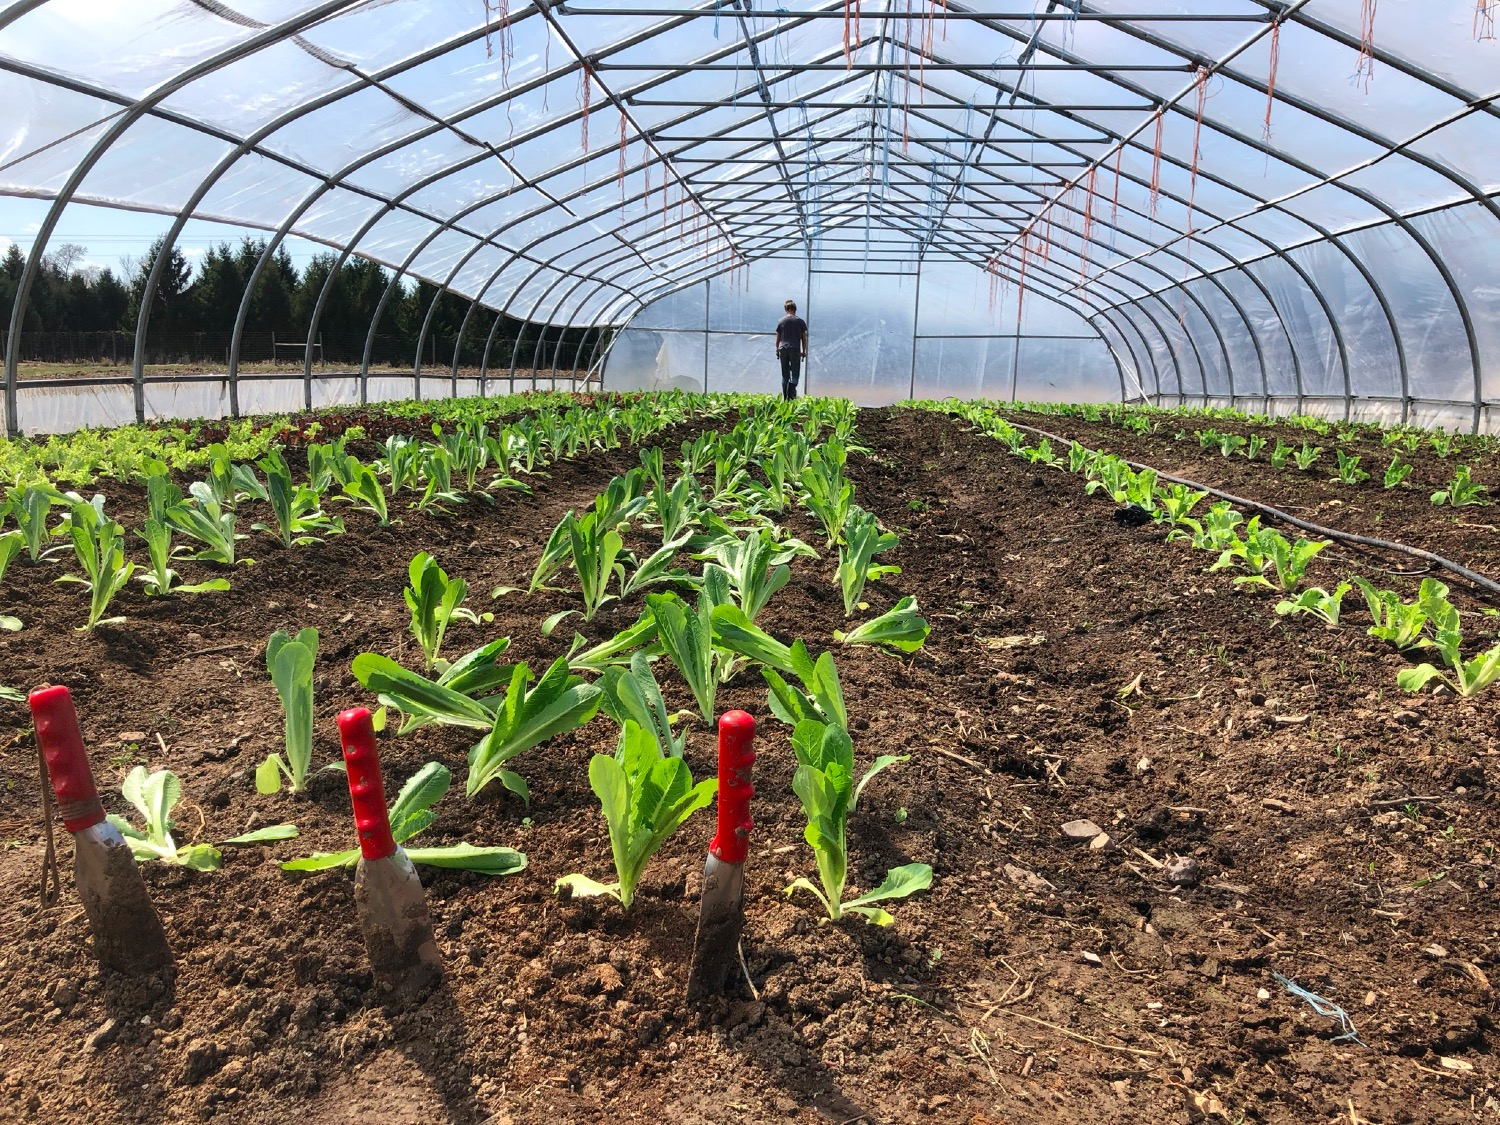 hoop houses planted with greens for first CSA boxes